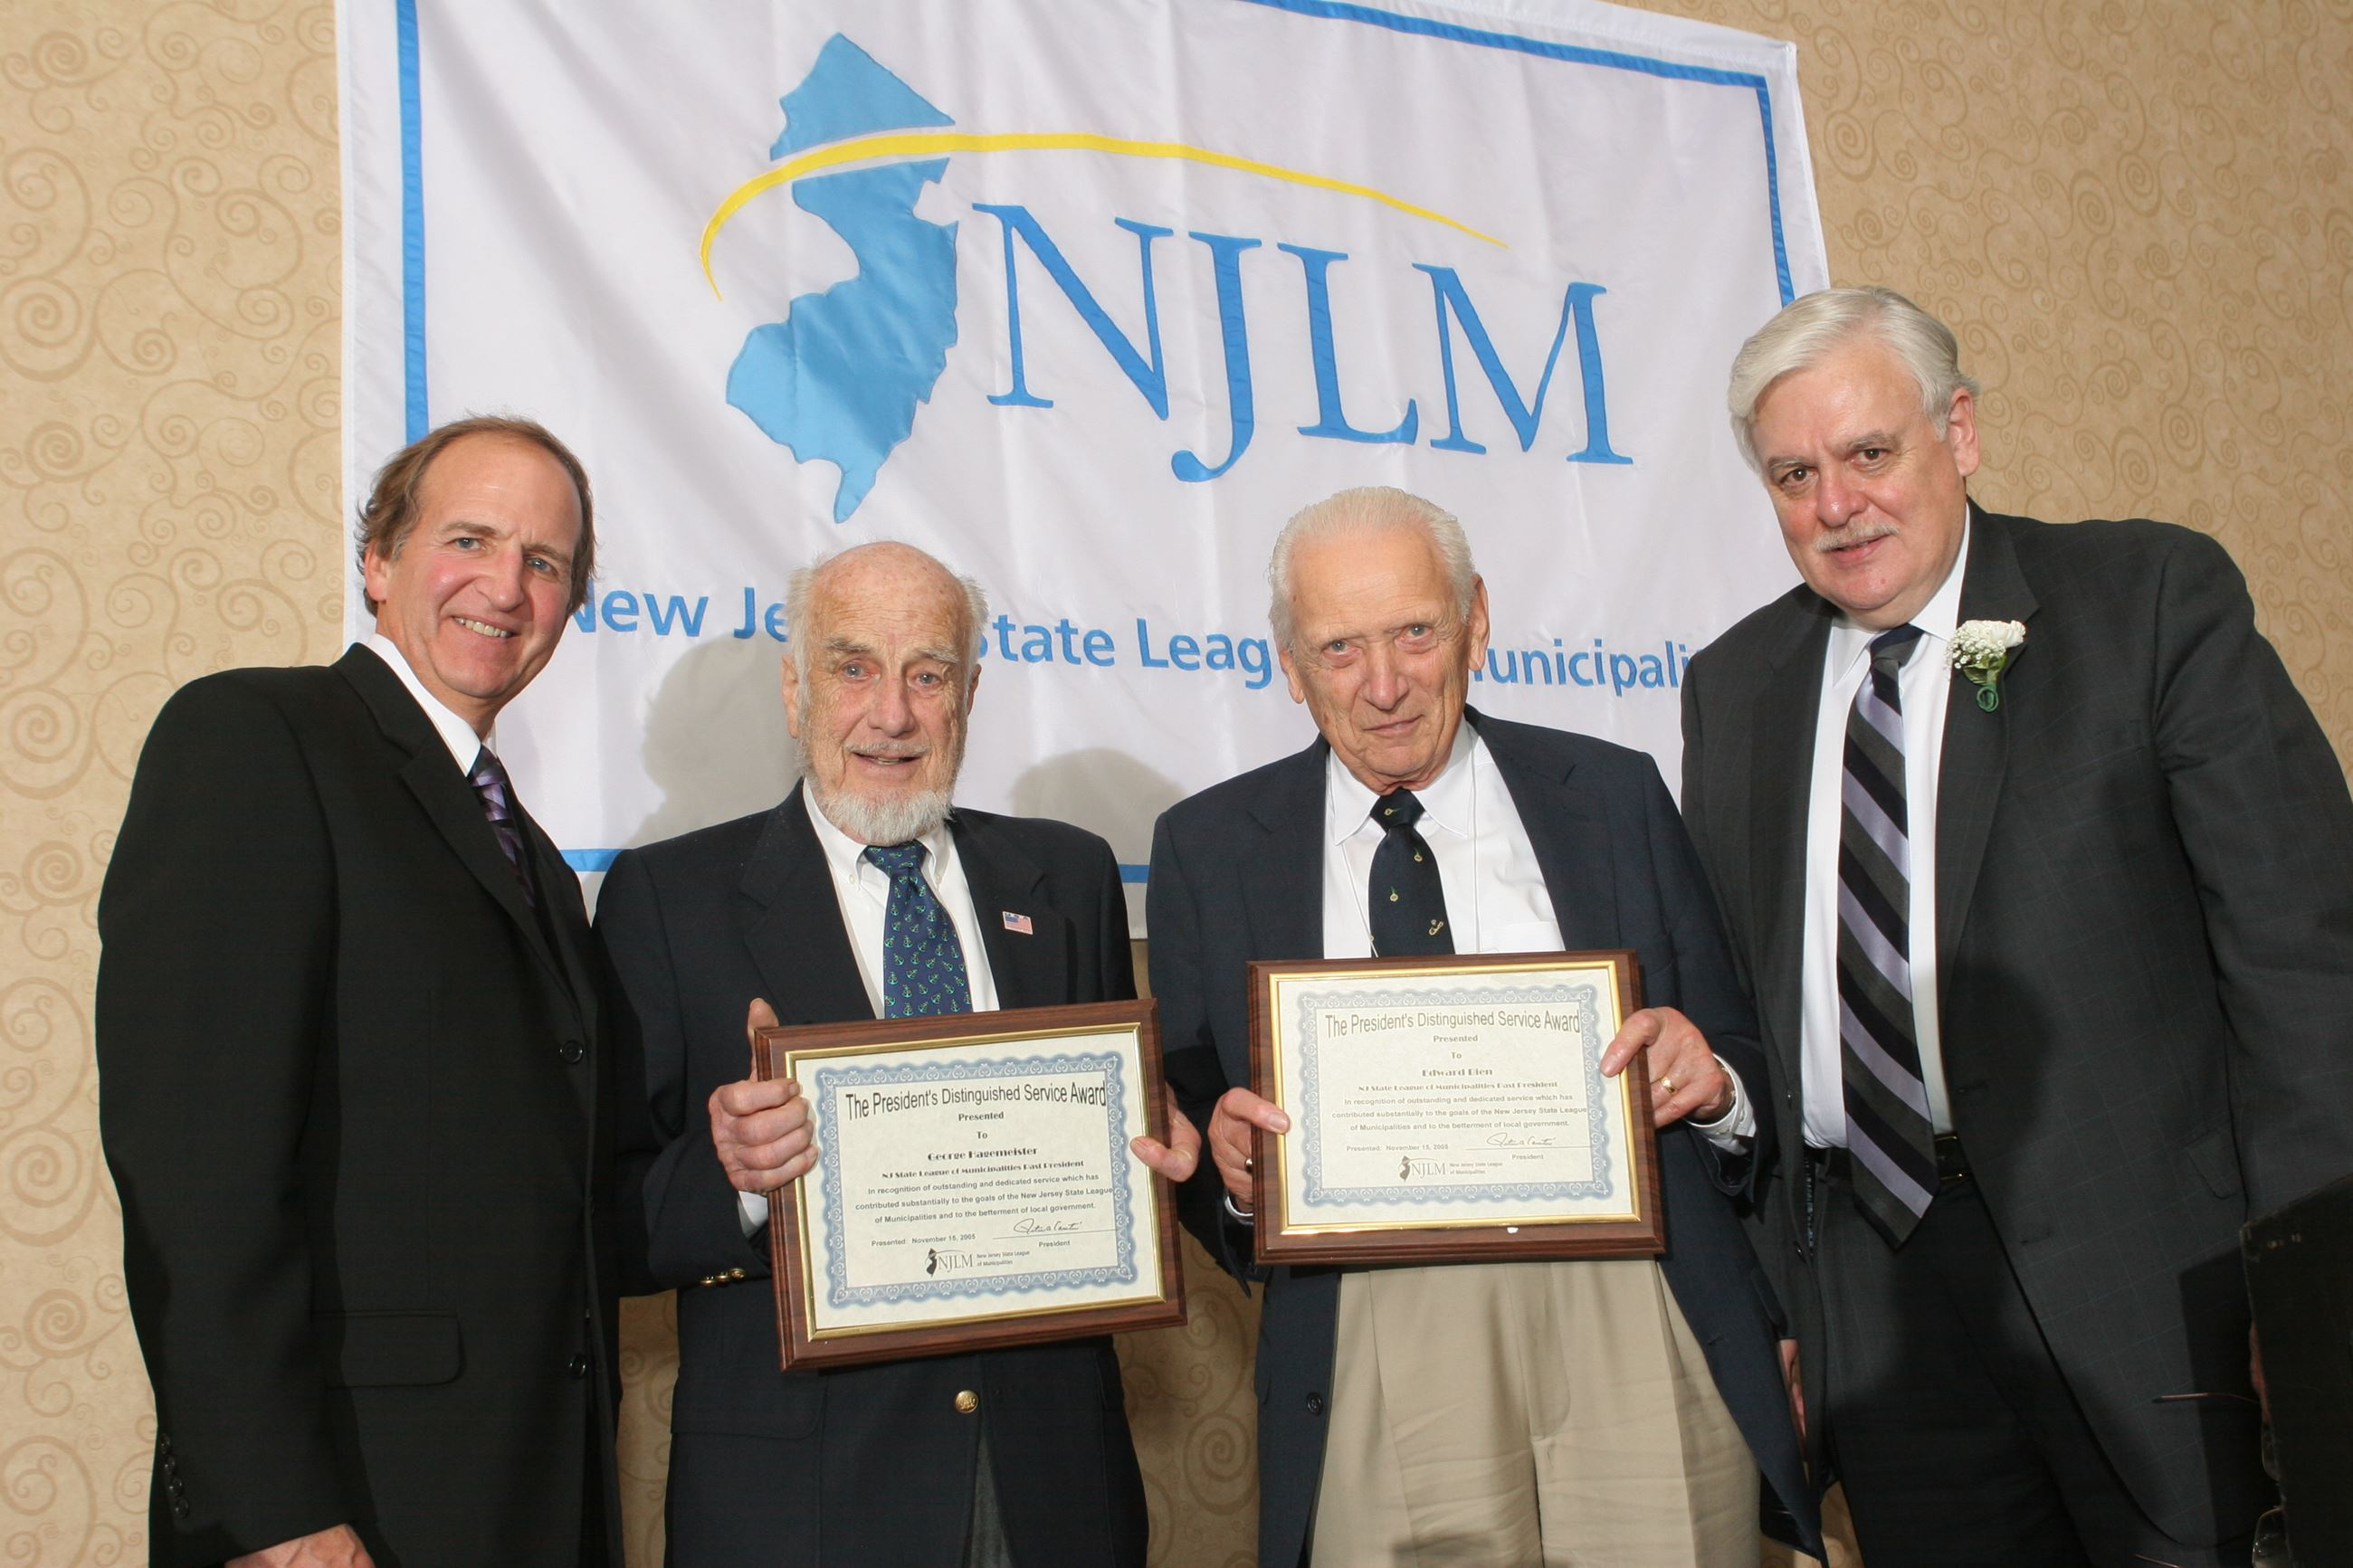 NJLM's Dressel and Mayor Cantu flank President's Distinguished Service Award winners George Ha